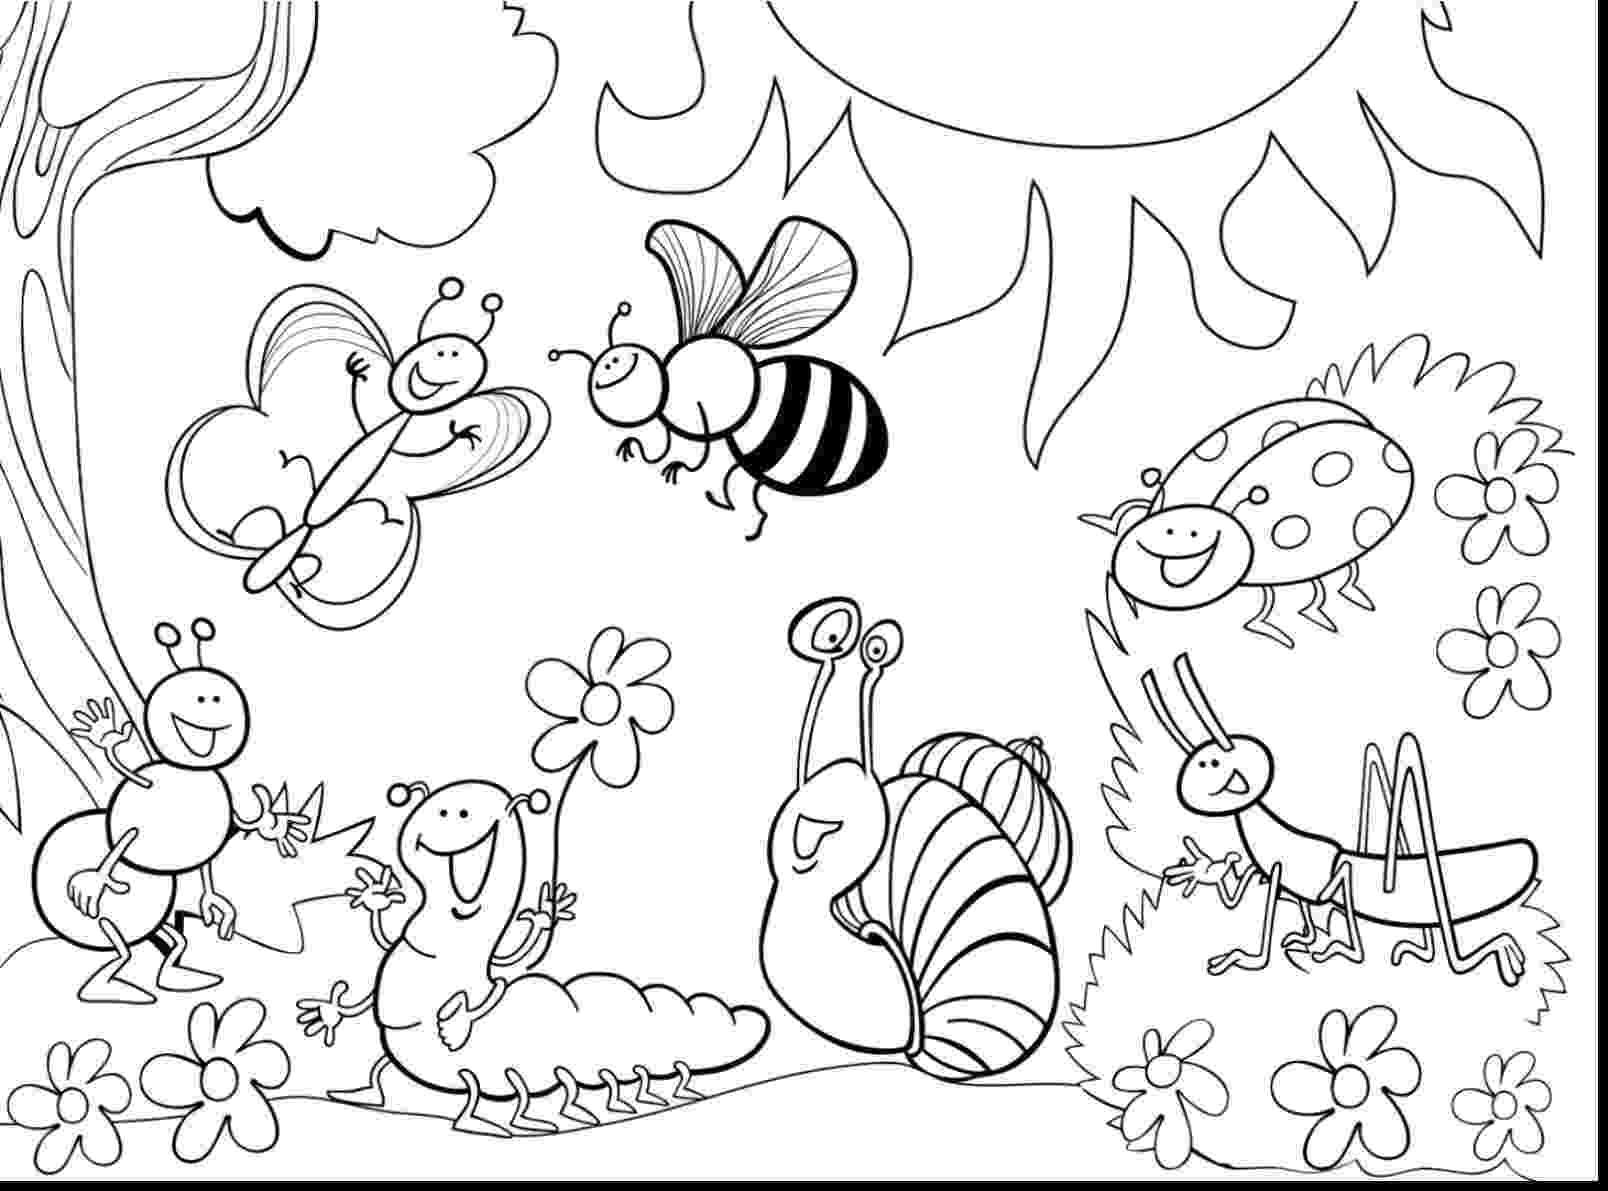 insect coloring pages preschool little bugs coloring pages for kids easy peasy and fun coloring insect preschool pages